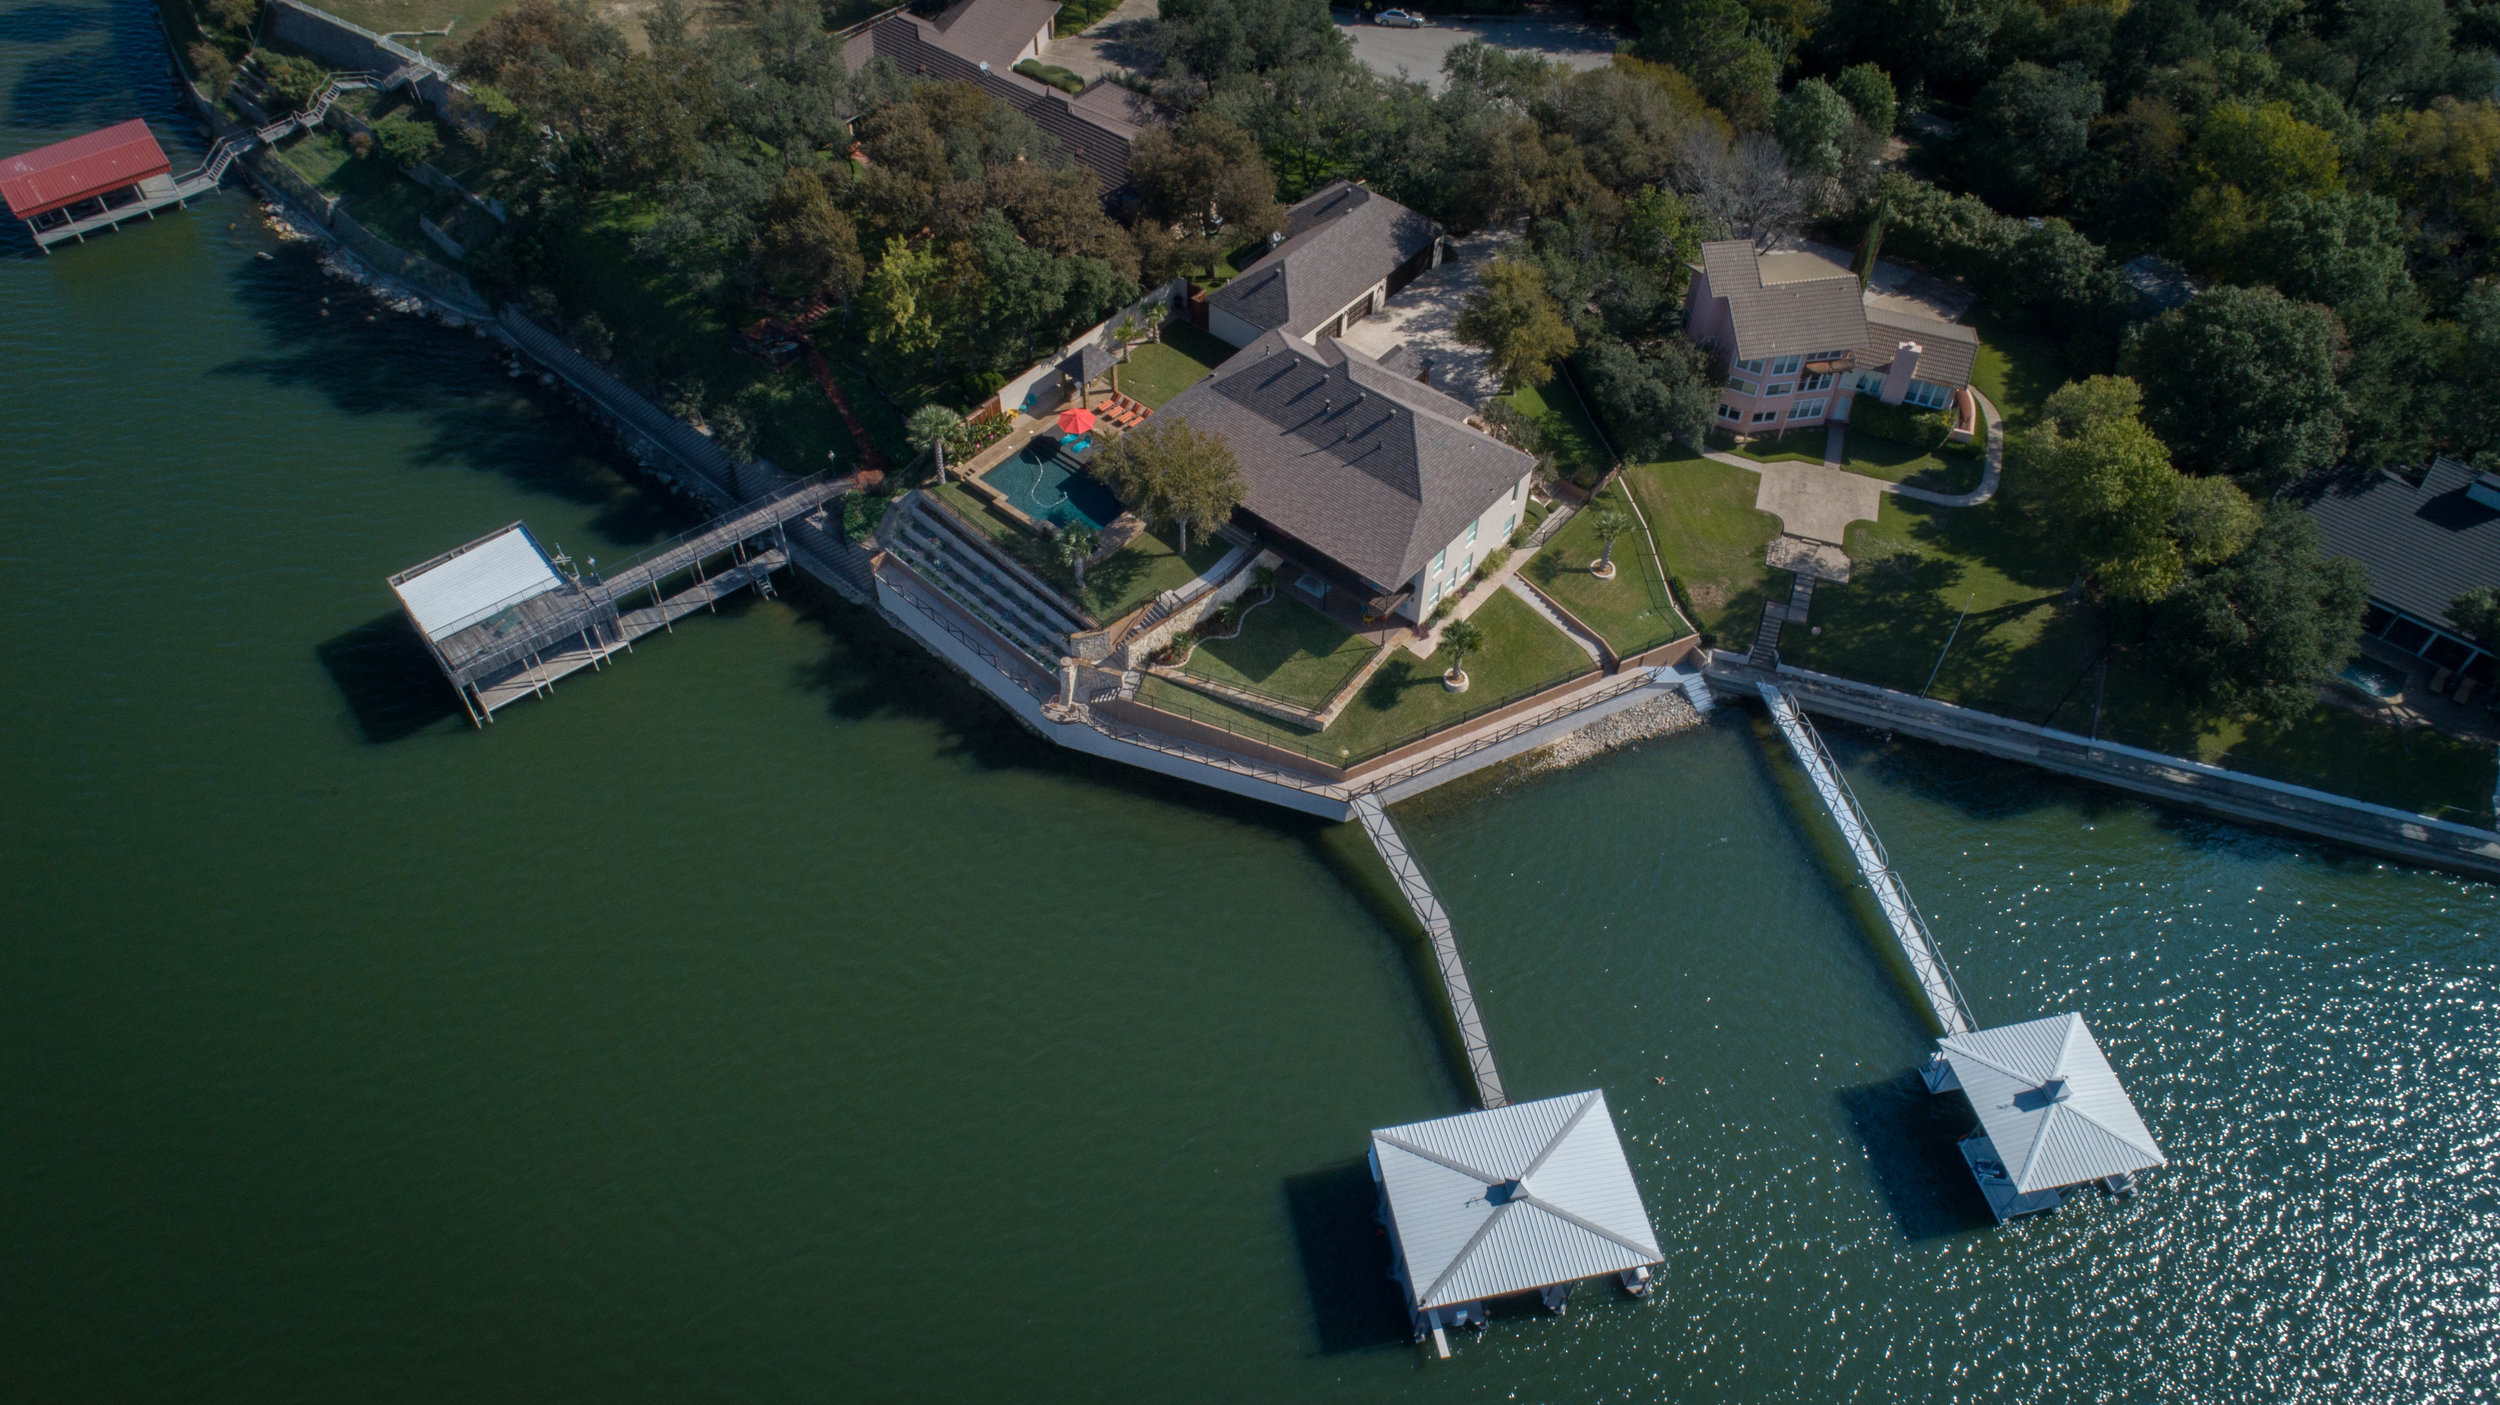 DJI_SMM_IS_7936SummitCove_10-12-062-1.jpg